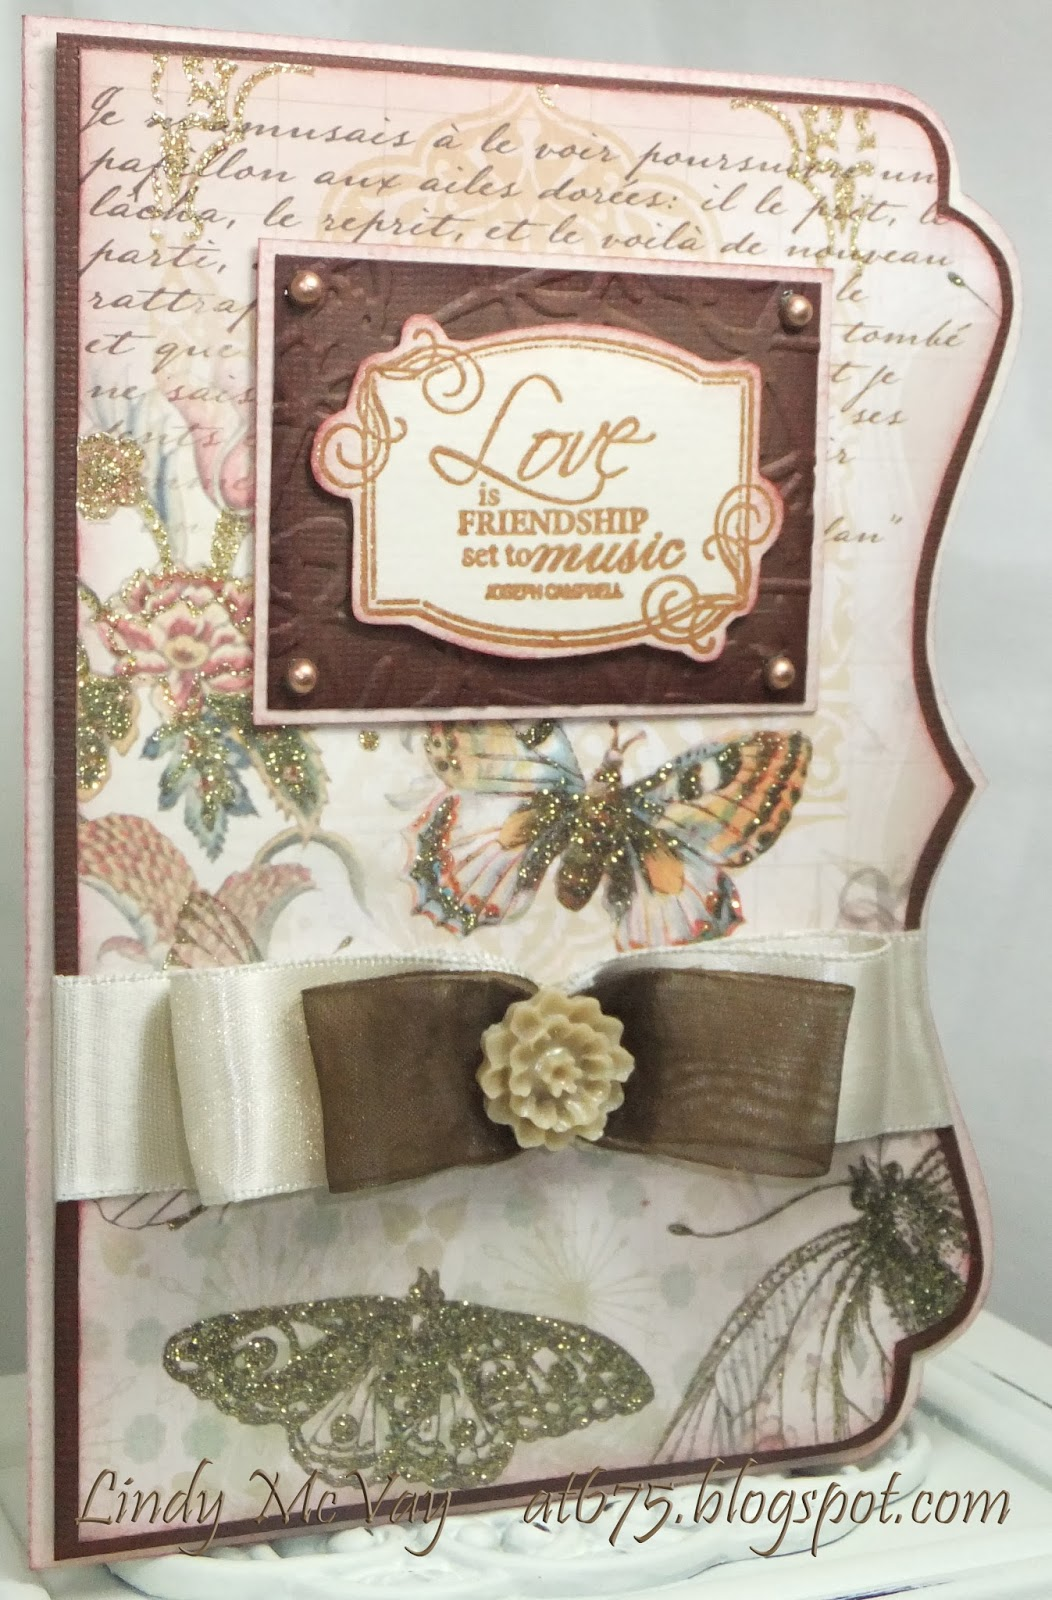 DCWV Mariposa, Silhouette SD, Simon Says Stamp Wednesday Challenge, cards, cards - anniversary, cards - wedding, Tim Holtz Distress Ink, Making Memories, Cuttlebug embossing folder, Offray ribbon, Bazzill Card    Stock, Tattered Angels Glimmer Mist, Fiskars stamp,